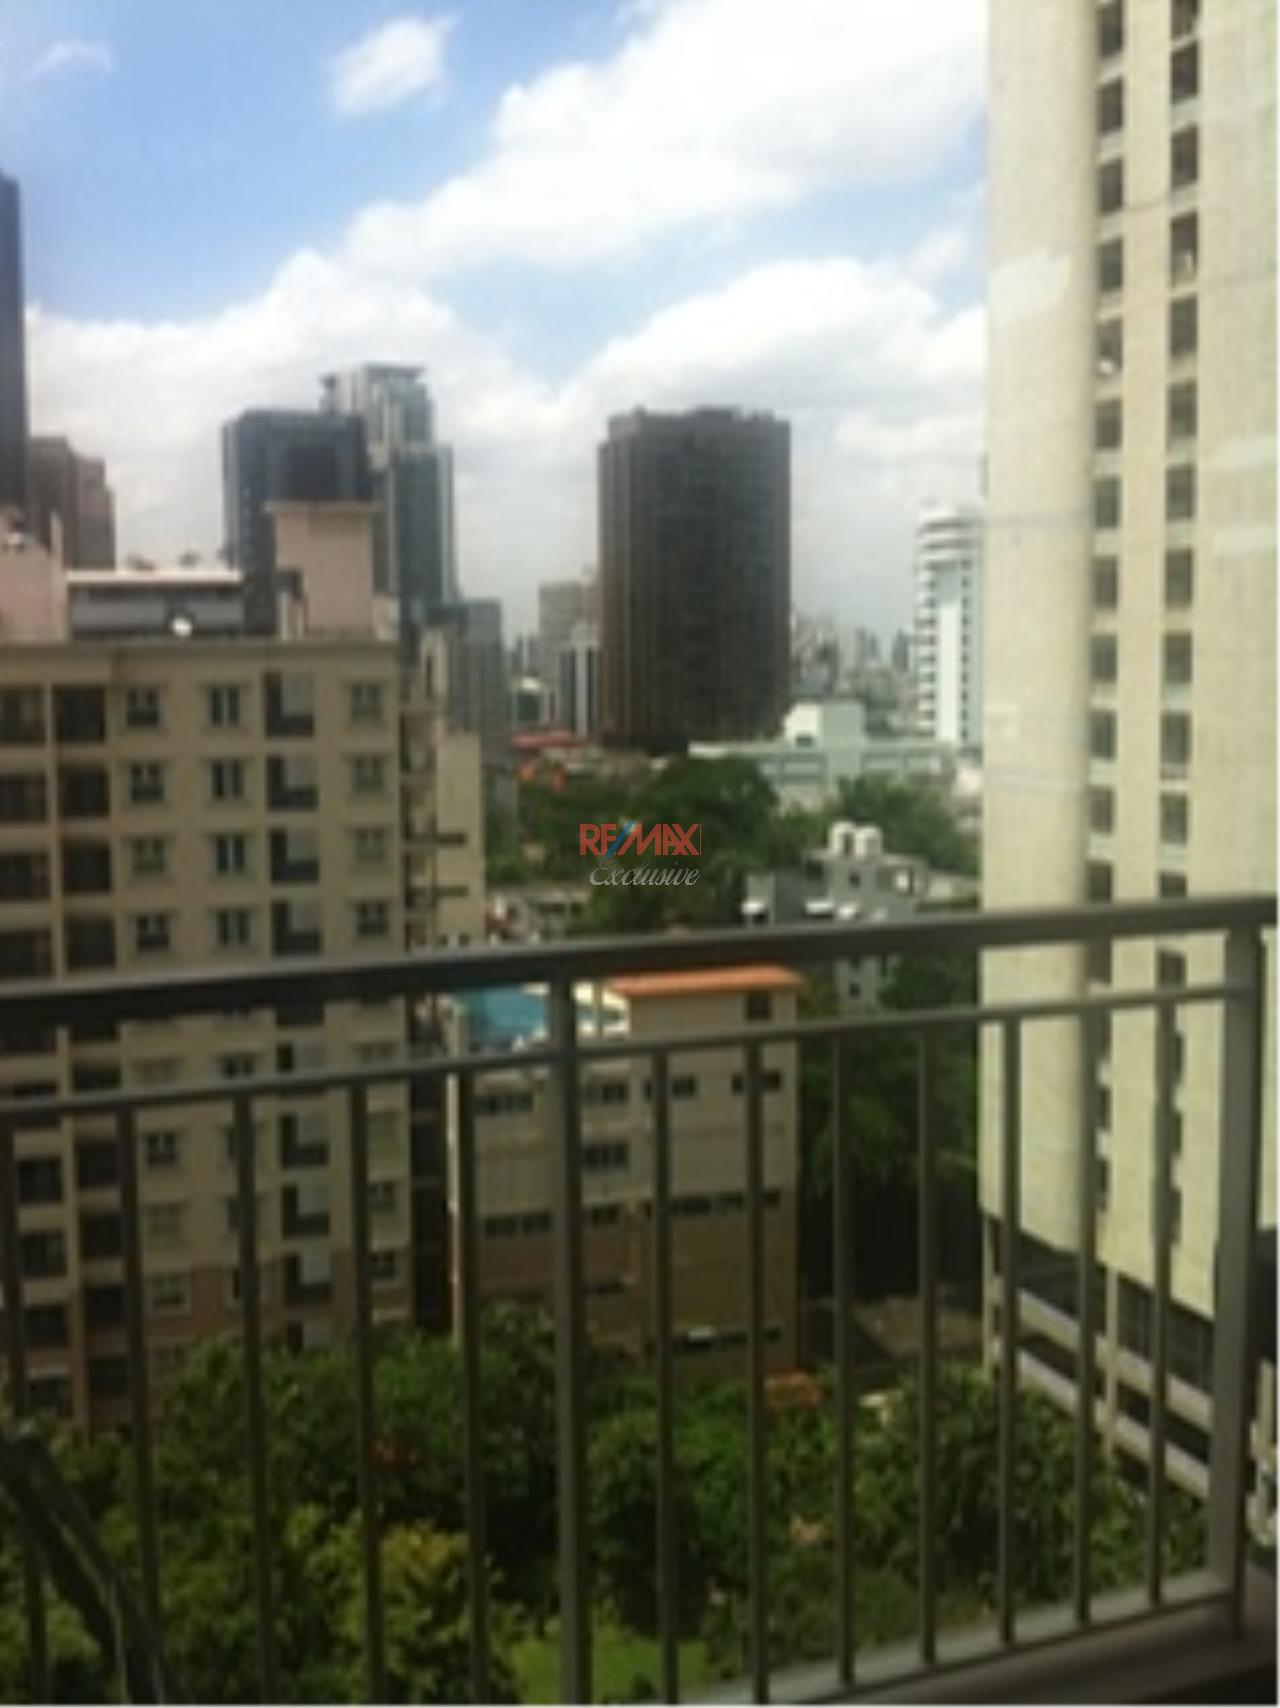 RE/MAX Exclusive Agency's BAAN SIRI 24, Sukhumvit 24, Fully-Furnished, 1 Bedroom, 60 Sq.M. High Floor, City View! 1